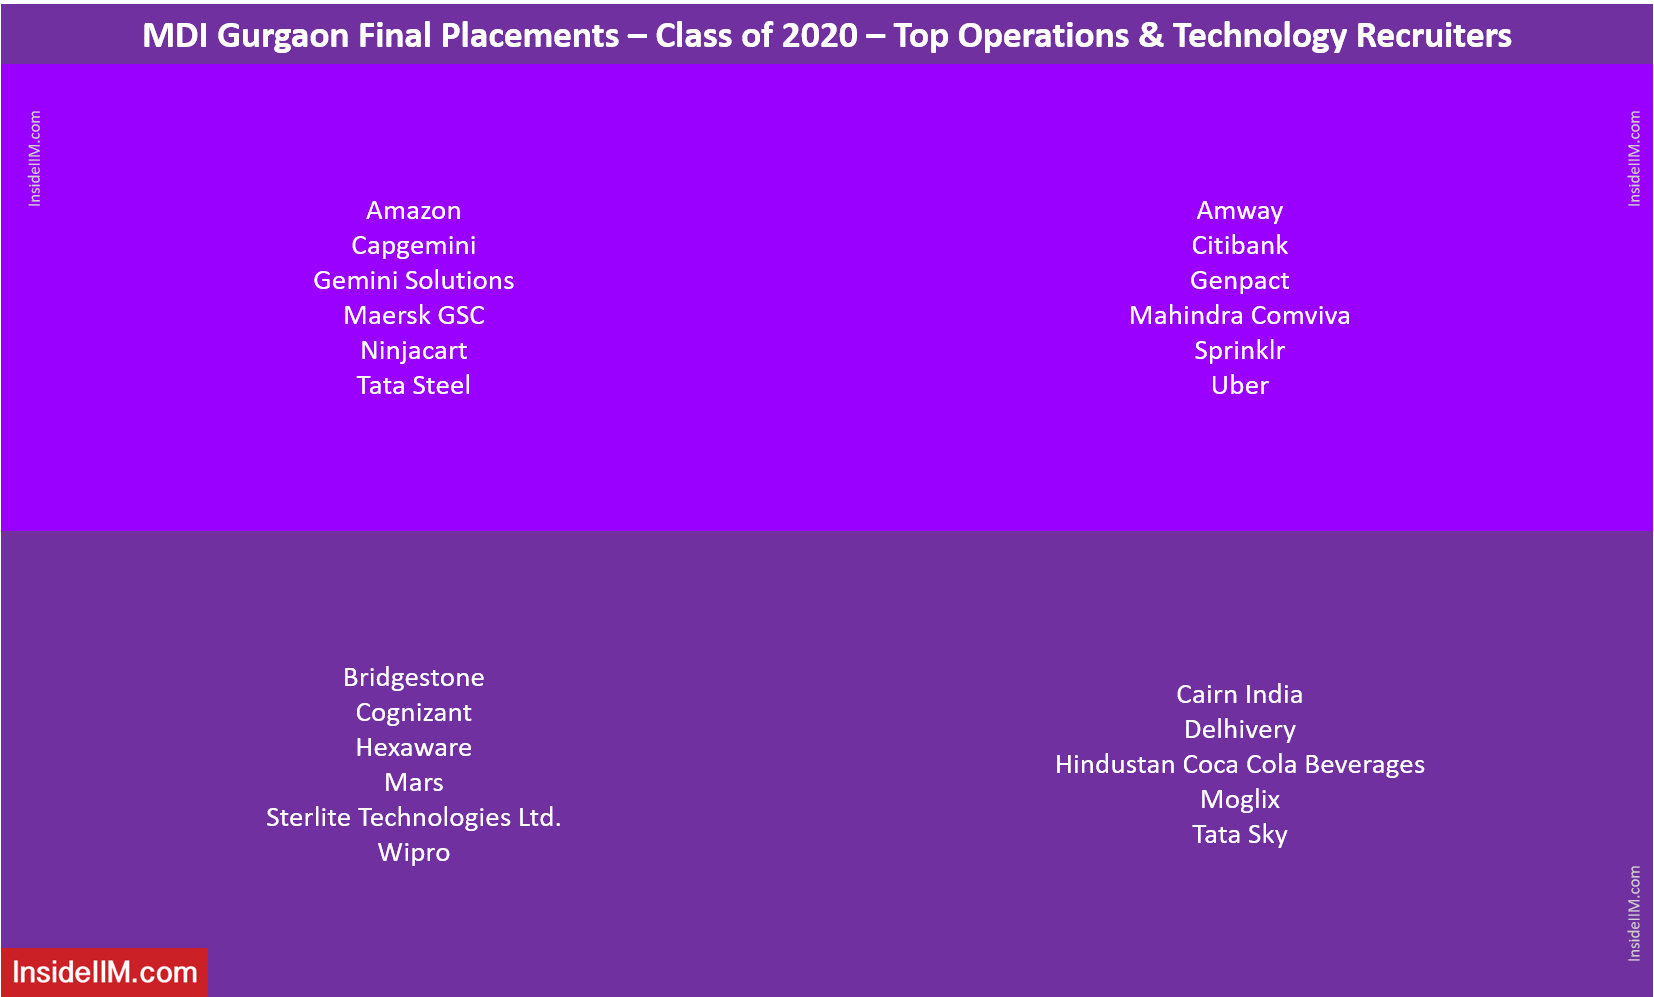 MDI Gurgaon Final Placements 2020 - Top Operations & Technology Recruiters